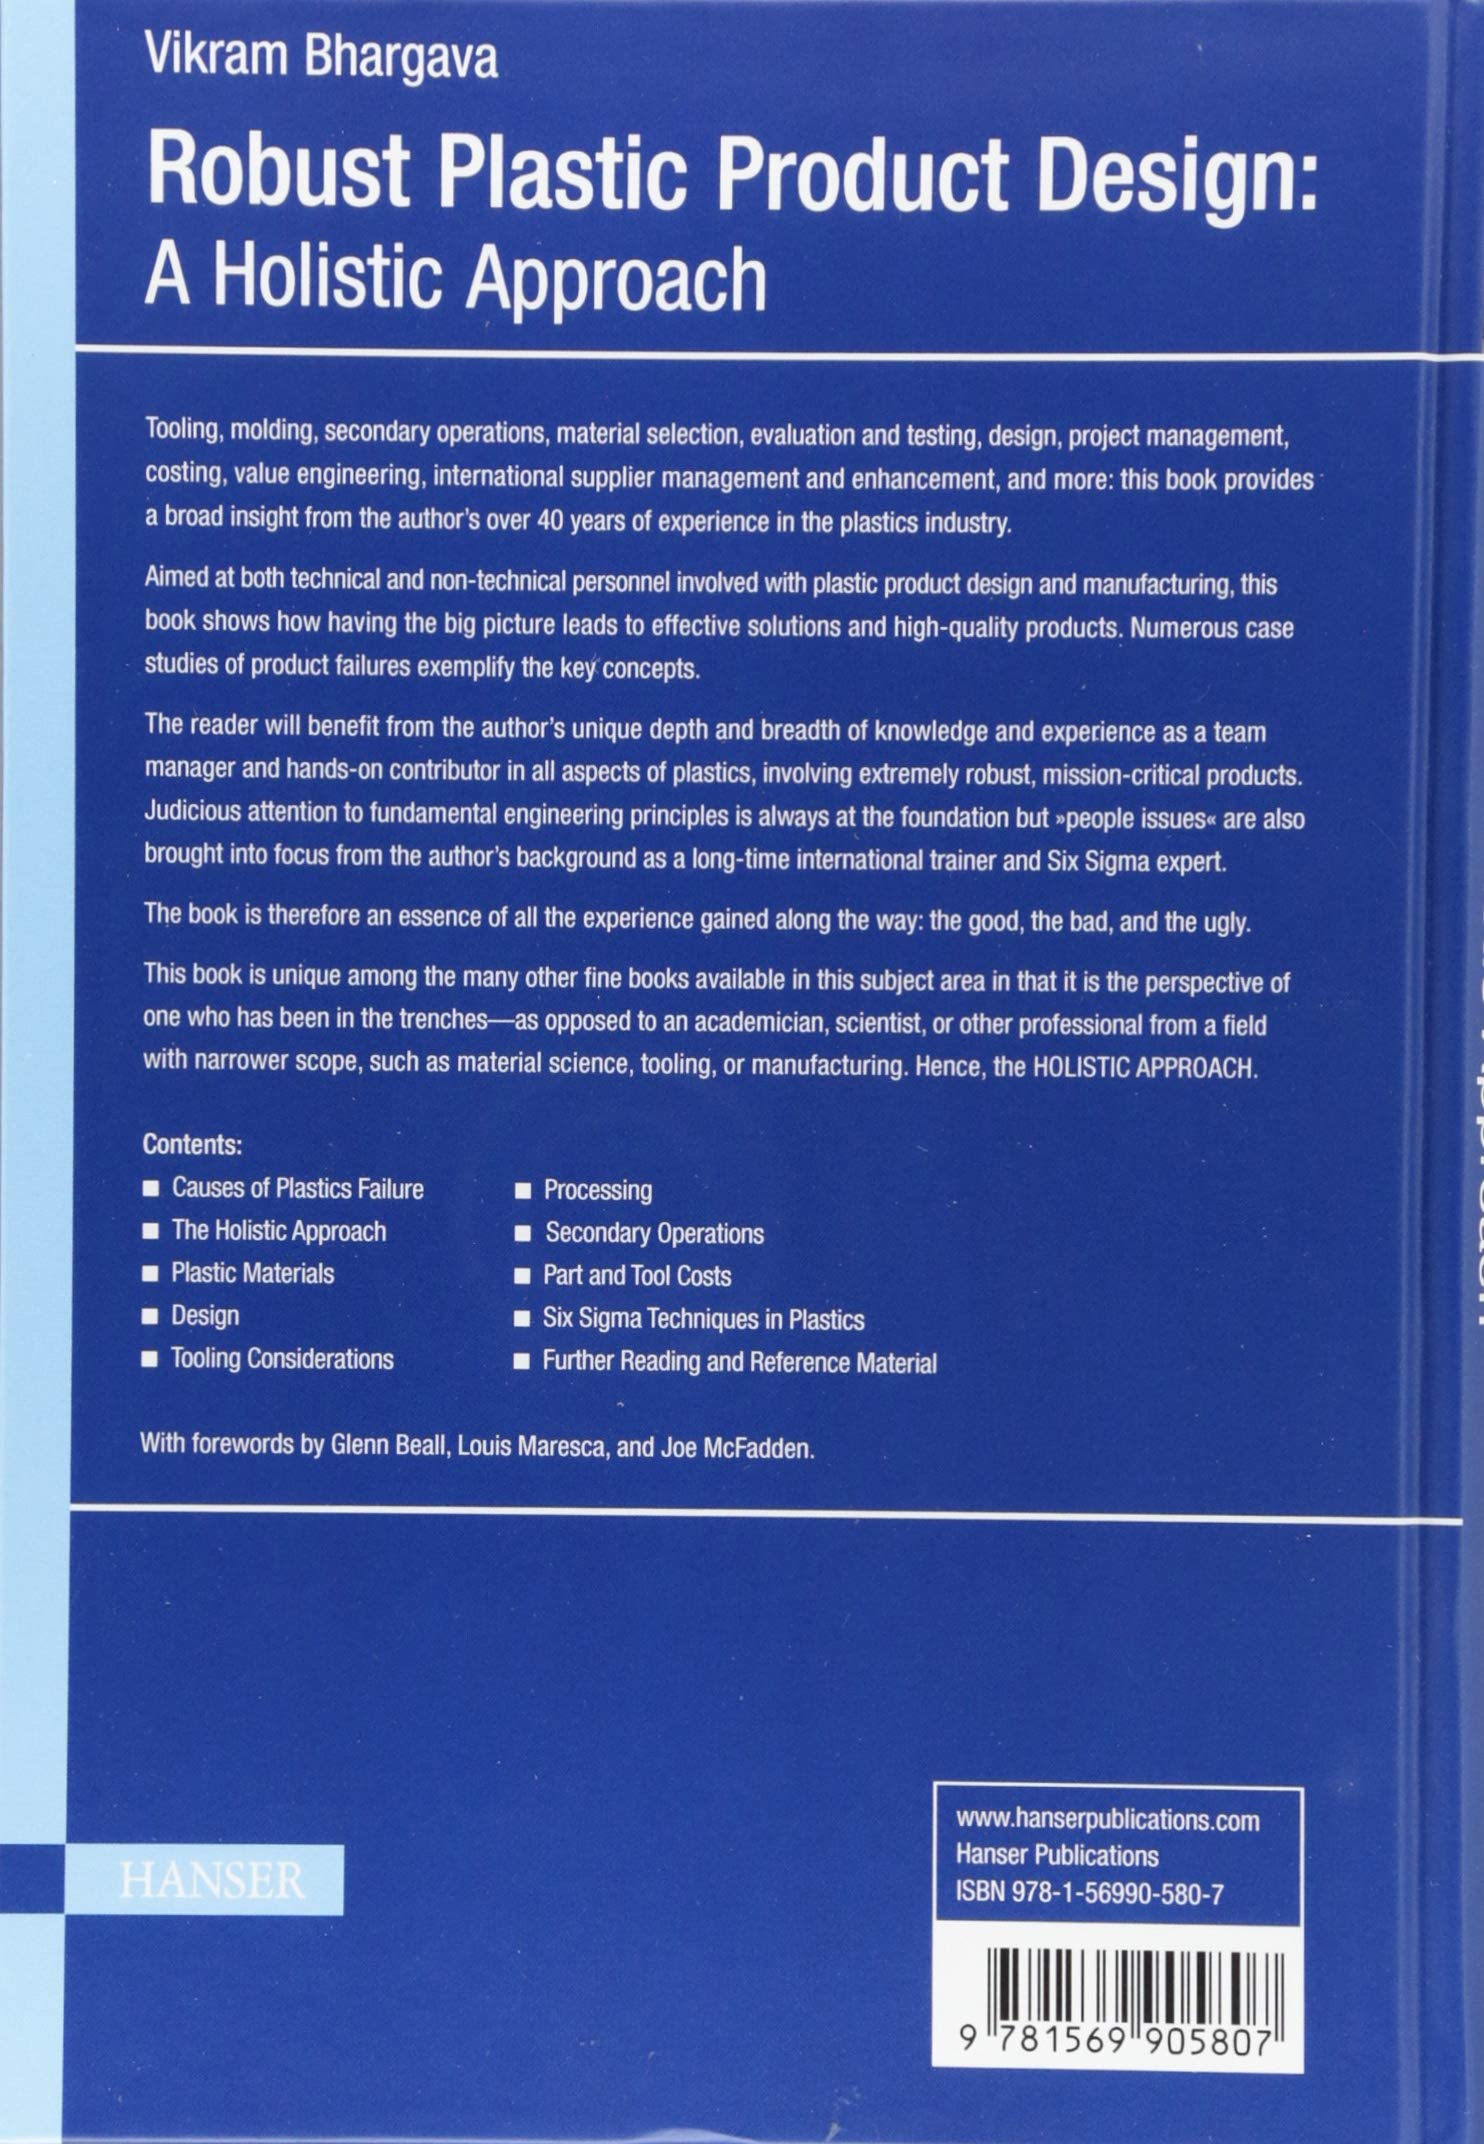 Buy Robust Plastic Product Design: A Holistic Approach Book